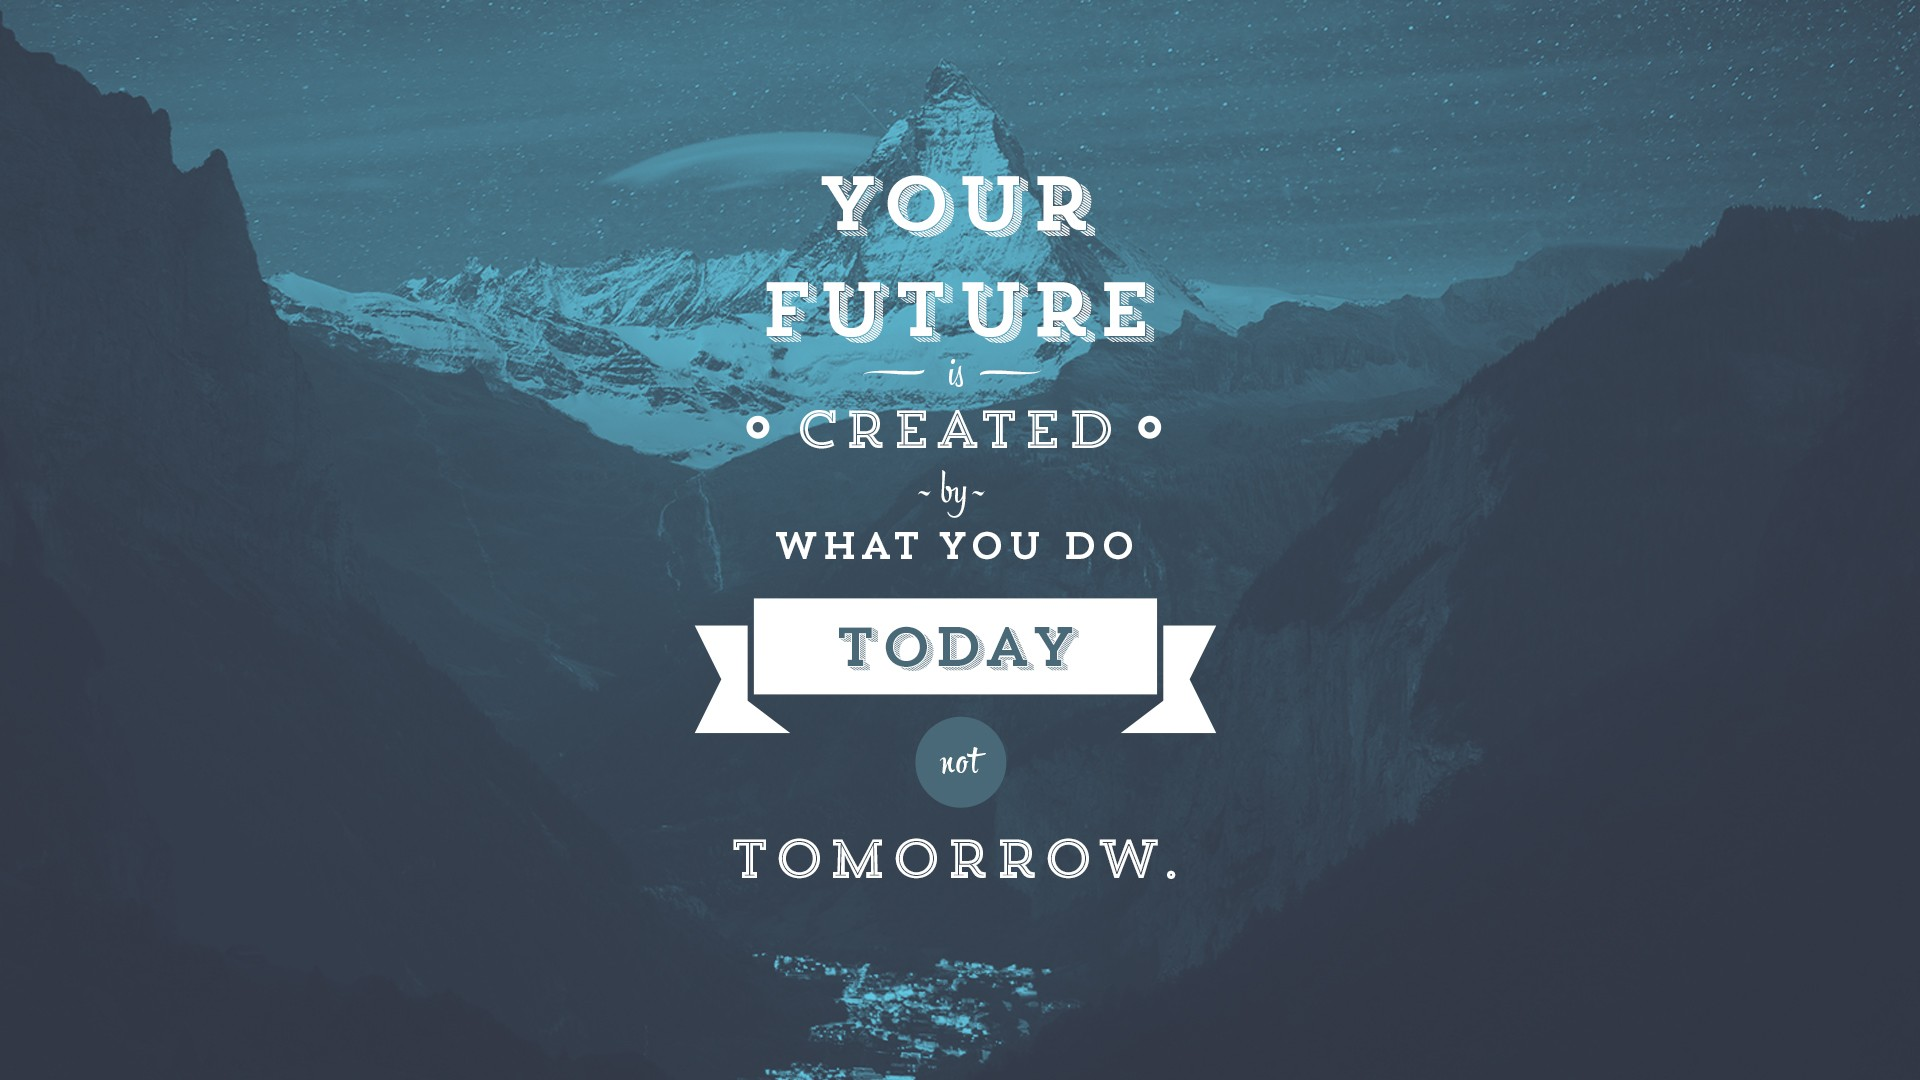 Wallpapers With Inspirational Quotes For Desktop